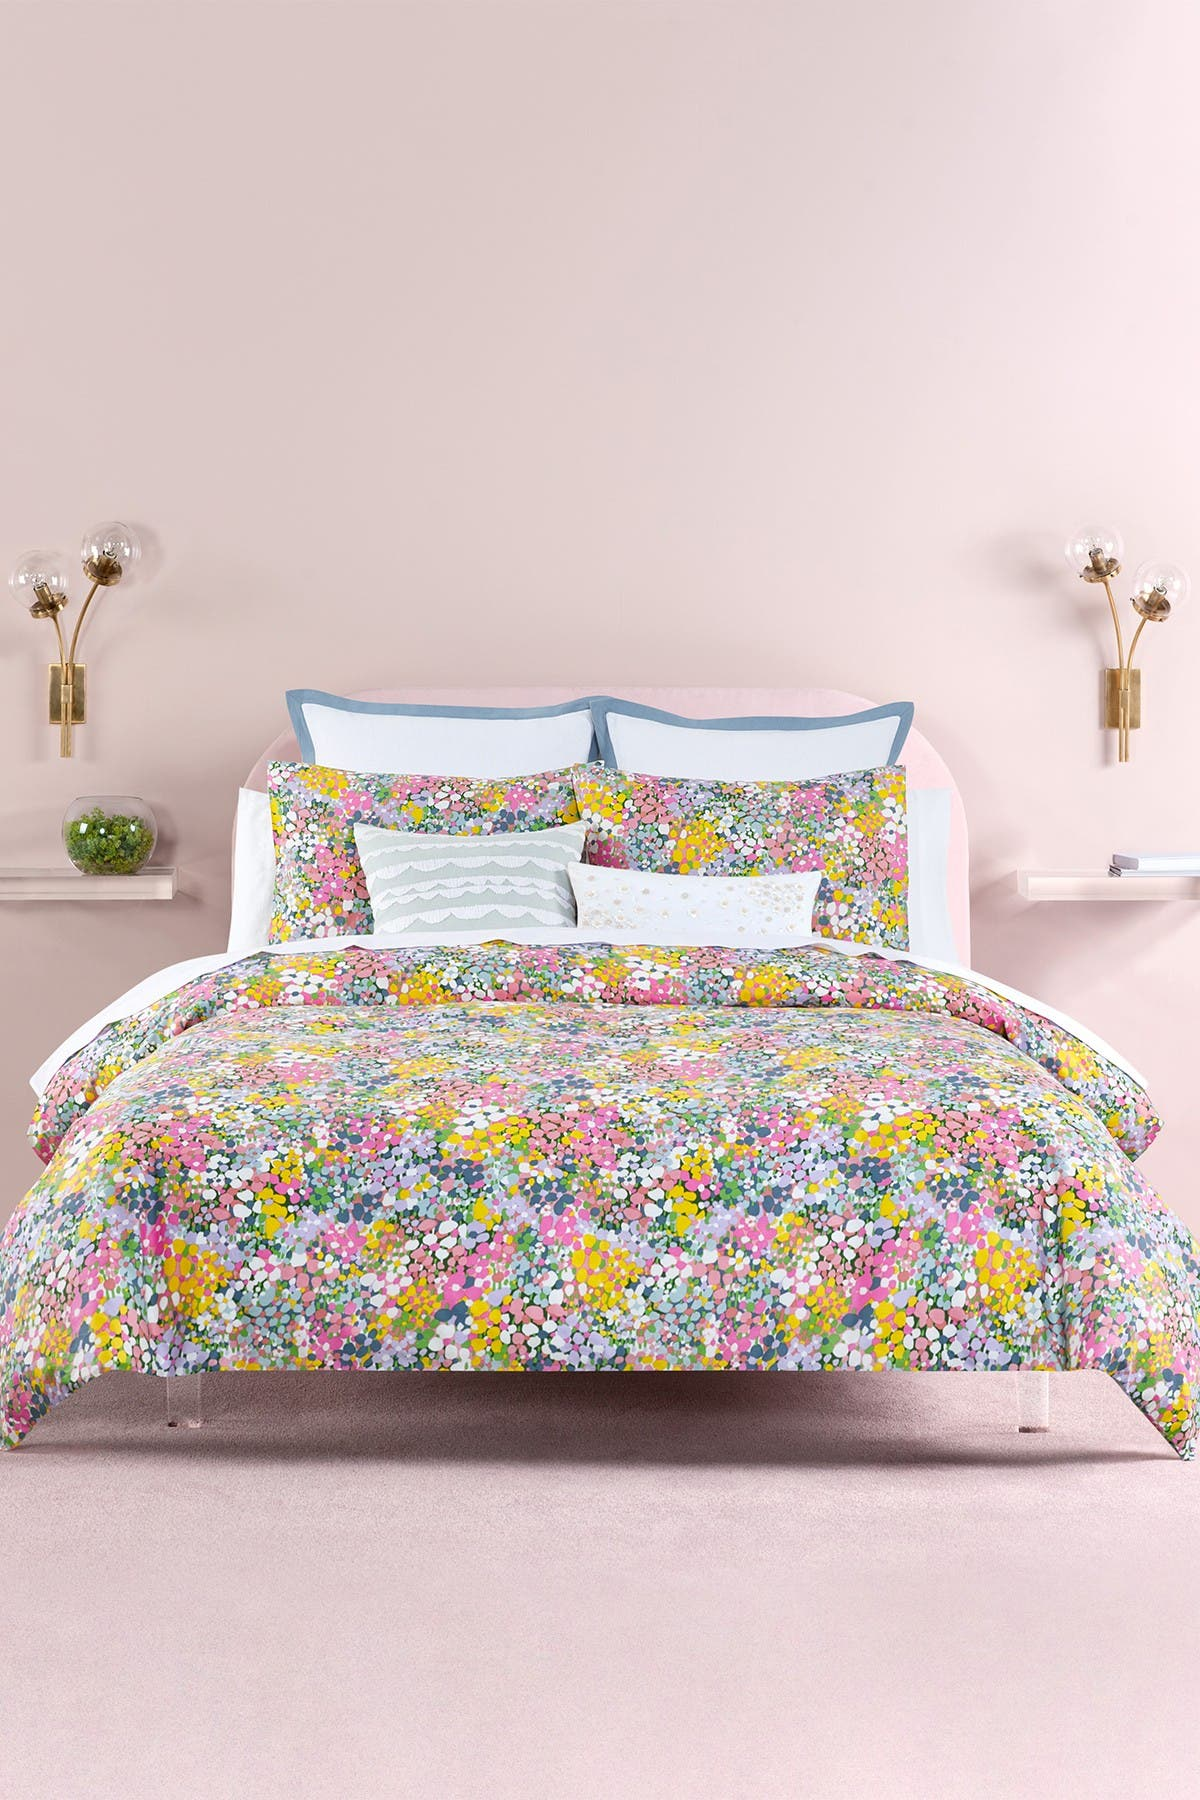 Image of kate spade new york floral dots duvet cover 3-piece set - king - lilac